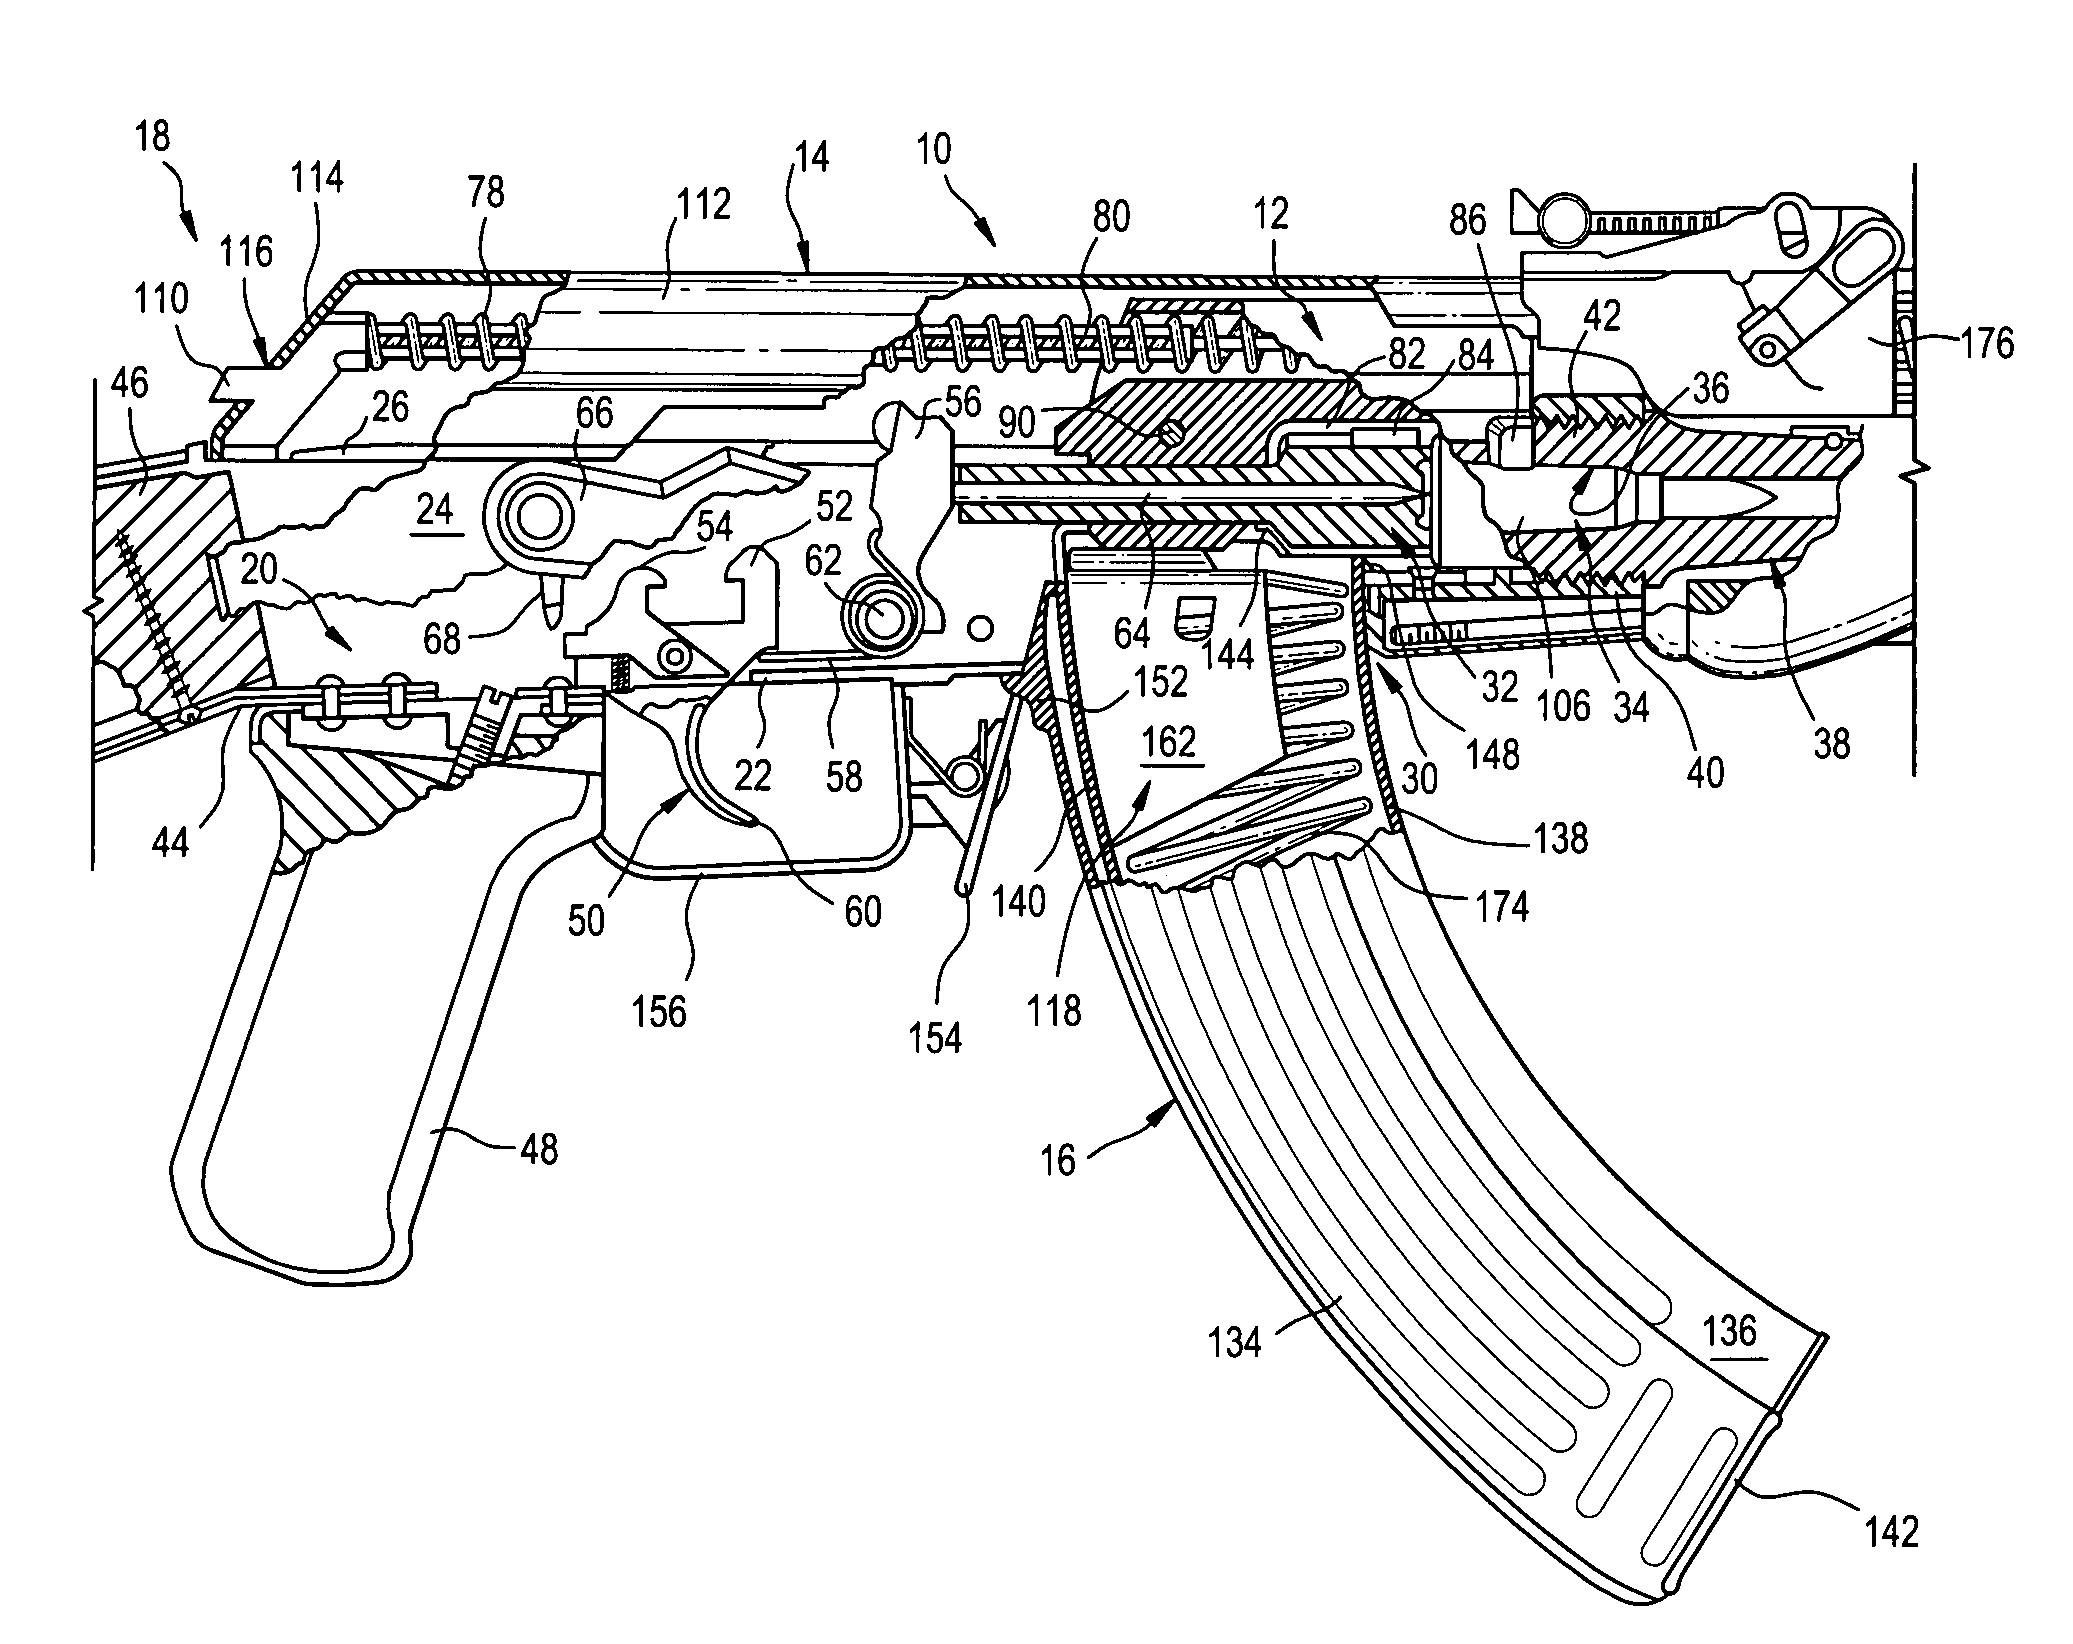 ak 47 blueprints schematics  ak  free engine image for